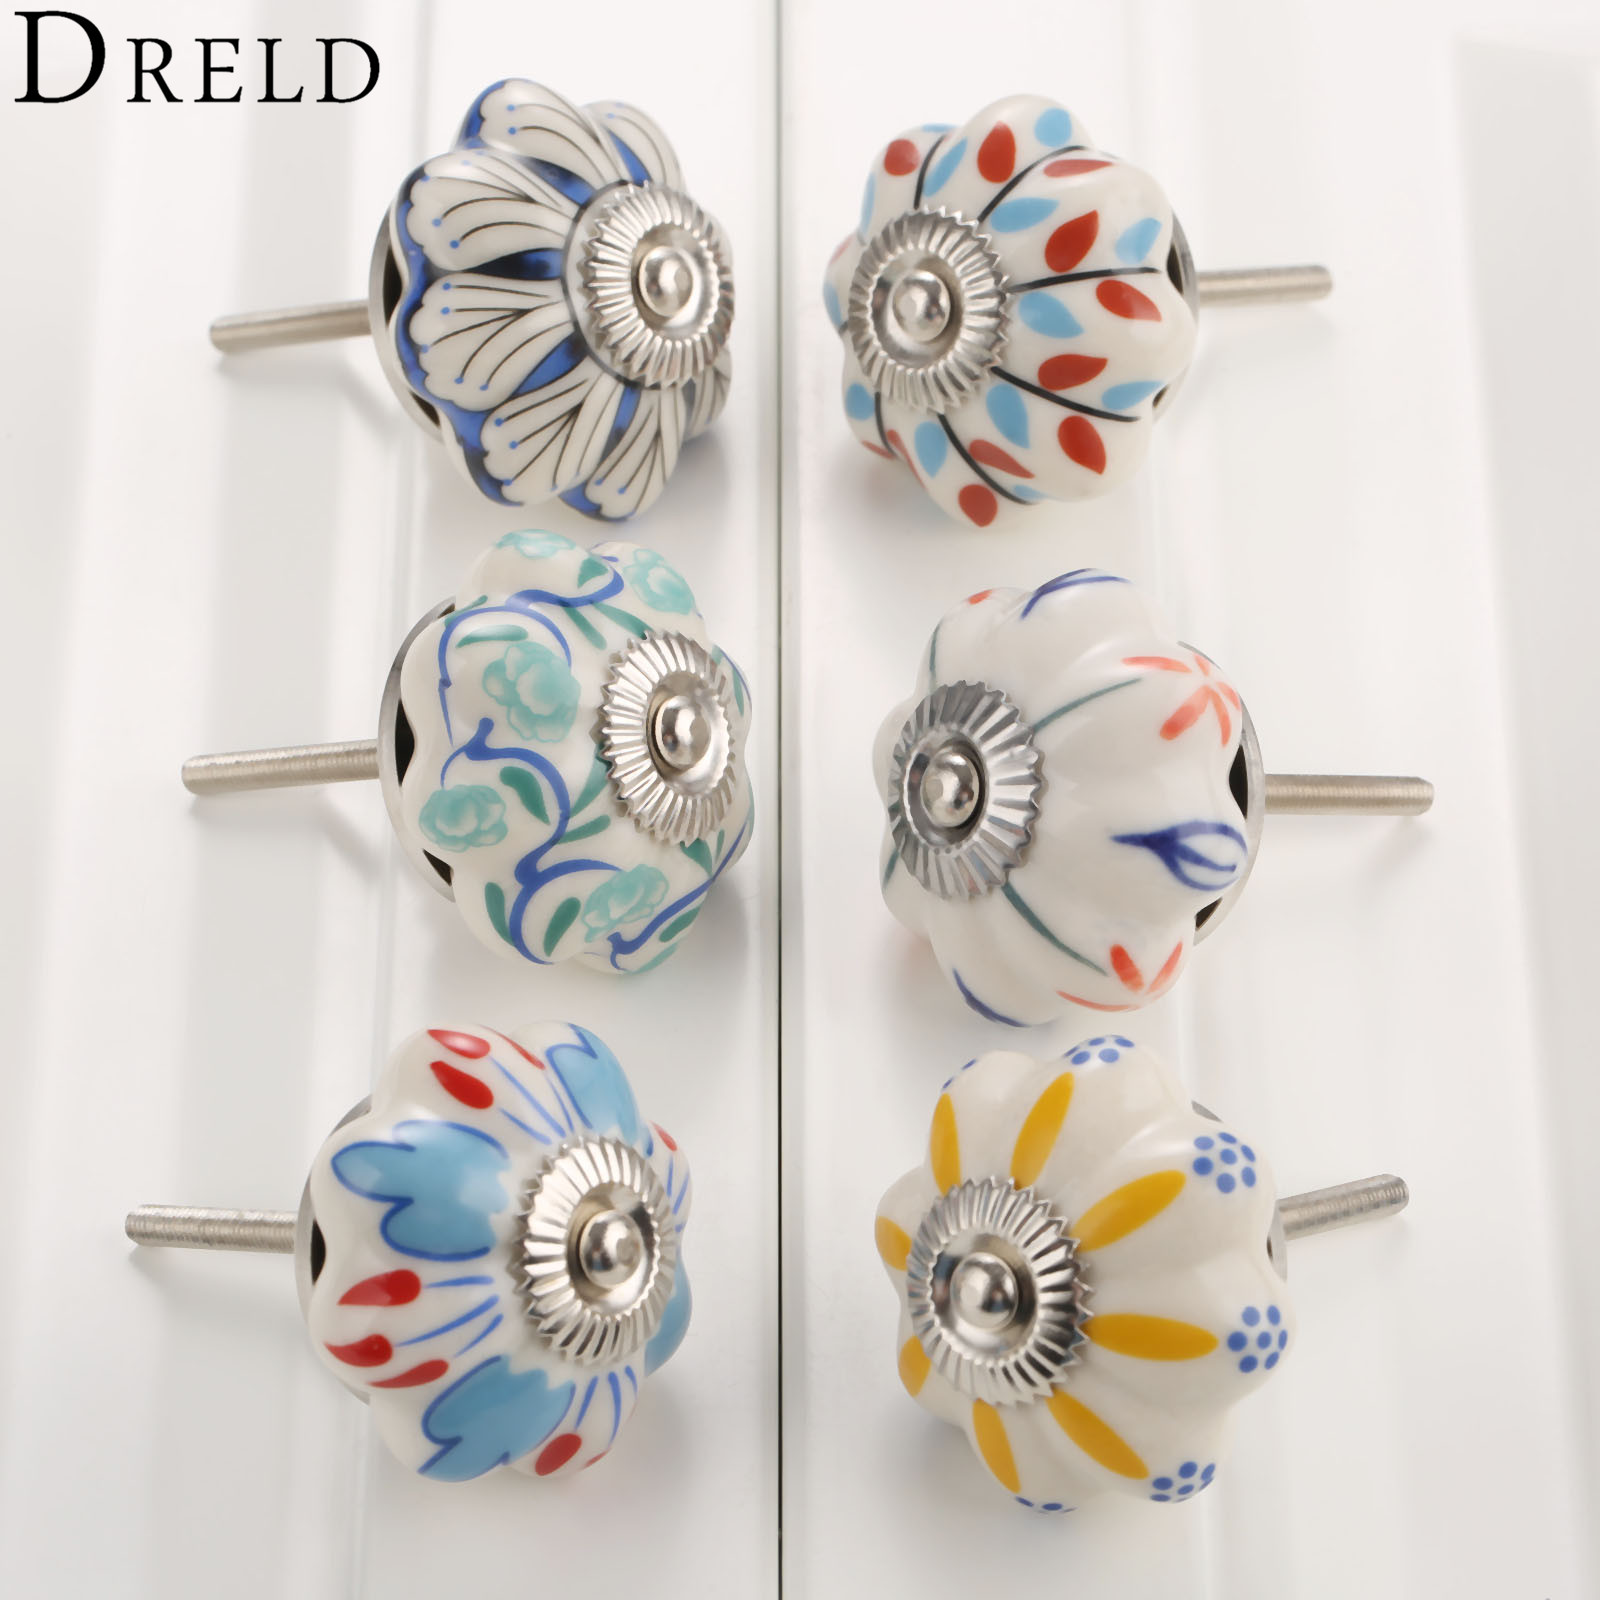 DRELD 40mm Furniture Handle Ceramic Drawer Cabinet Knobs and Handles Knobs Door Cupboard Kitchen Pull Handles Furniture Hardware комбинезоны бэбилита комбинезон плюшевый мишка page 6